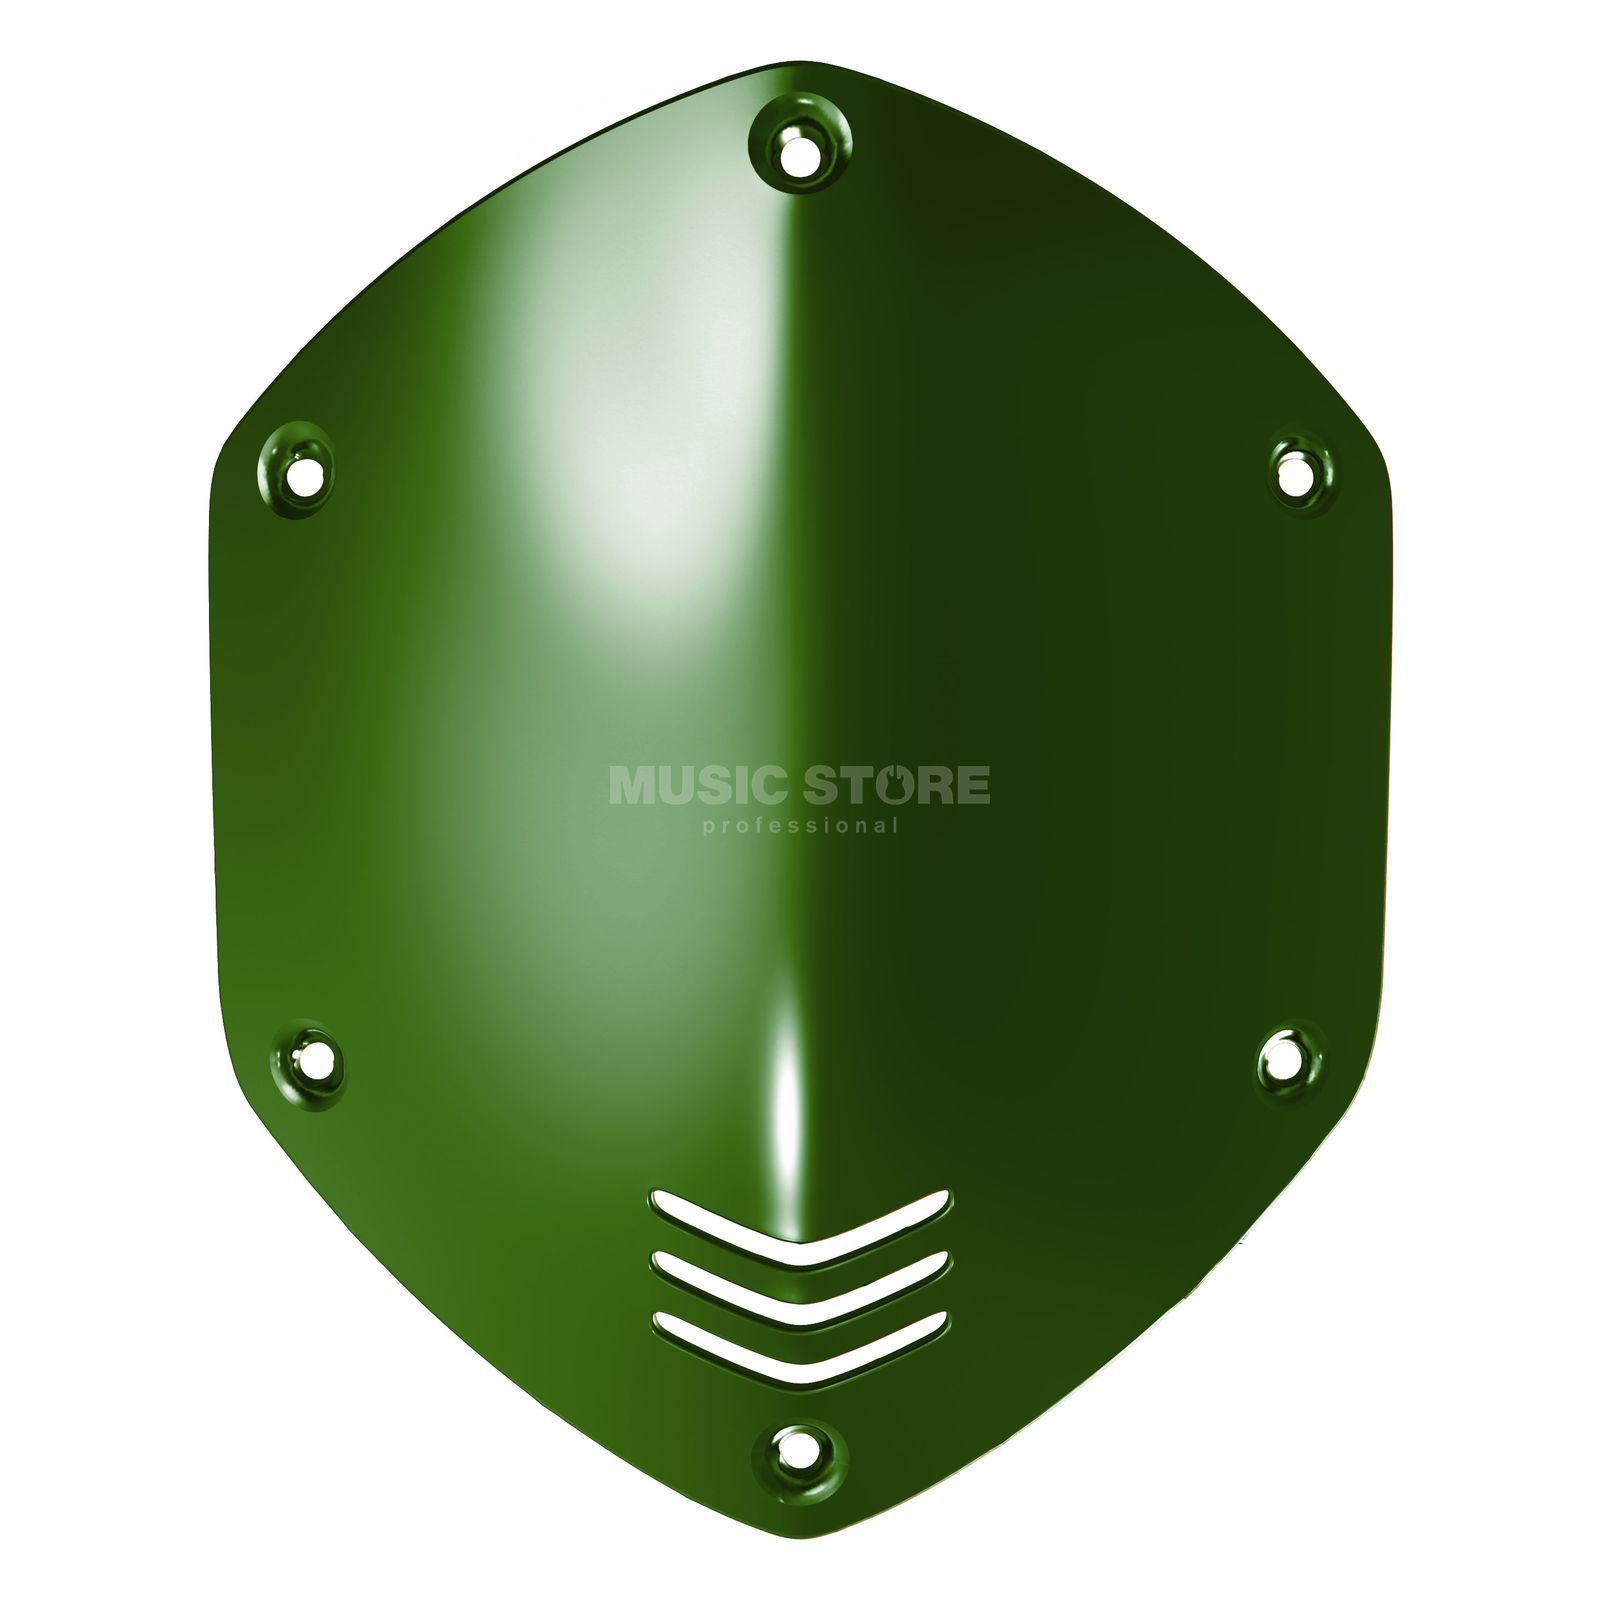 V-Moda Shield Kit M-100/LP2 (Over-Ear) hawk green Product Image